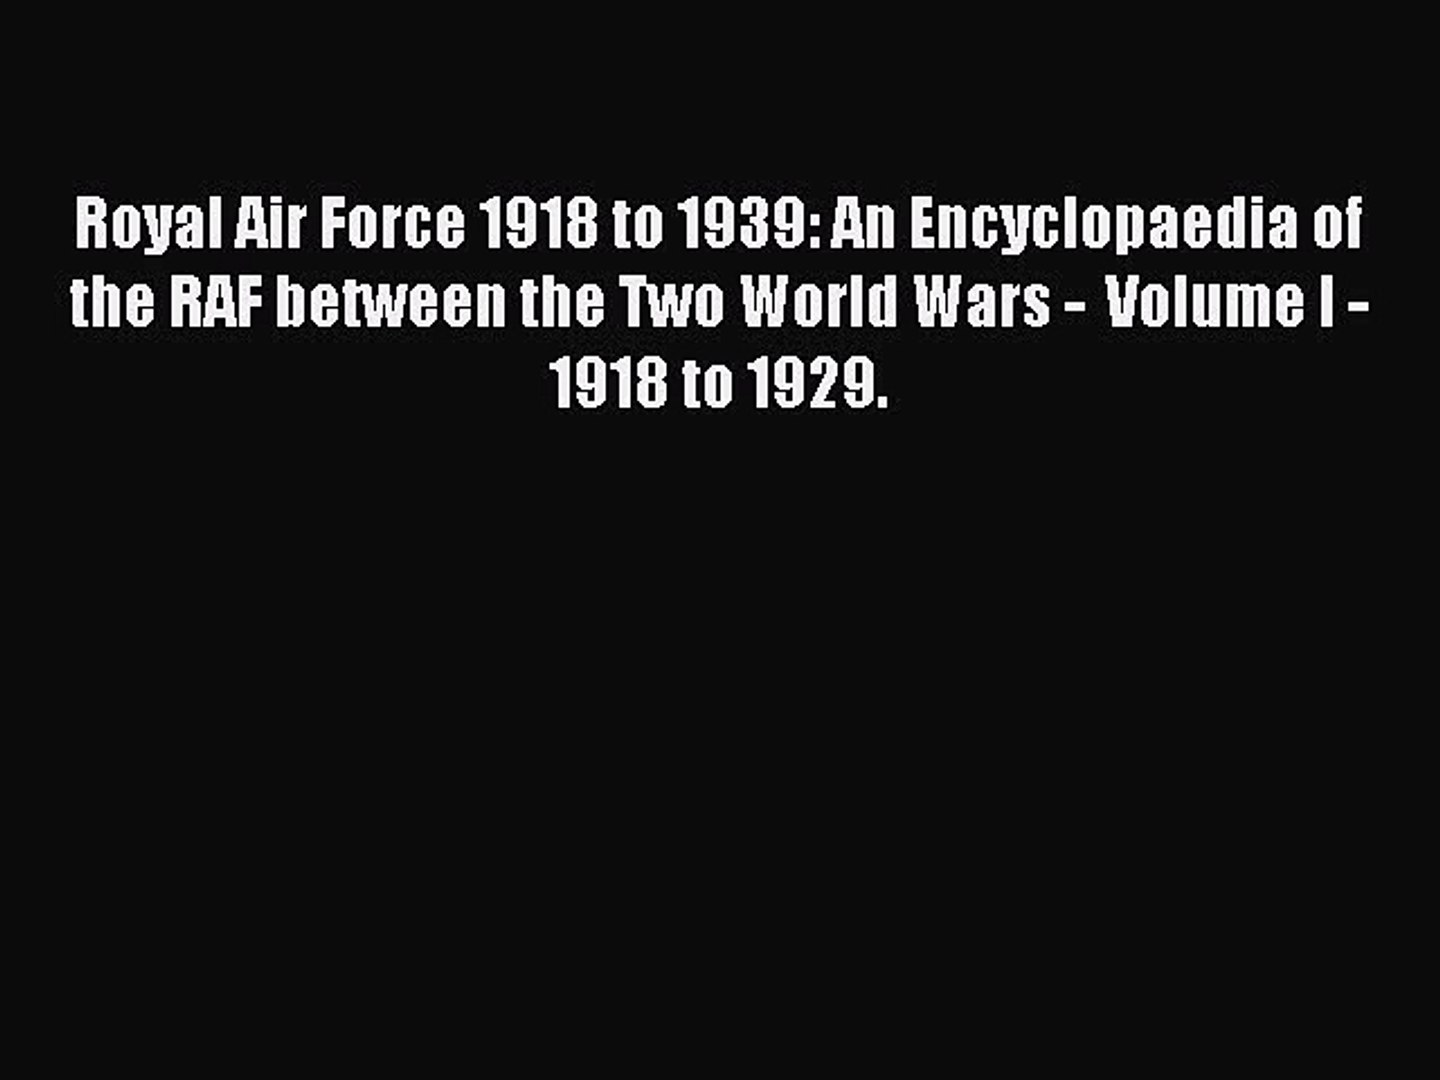 Read Royal Air Force 1918 to 1939: An Encyclopaedia of the RAF between the Two World Wars -